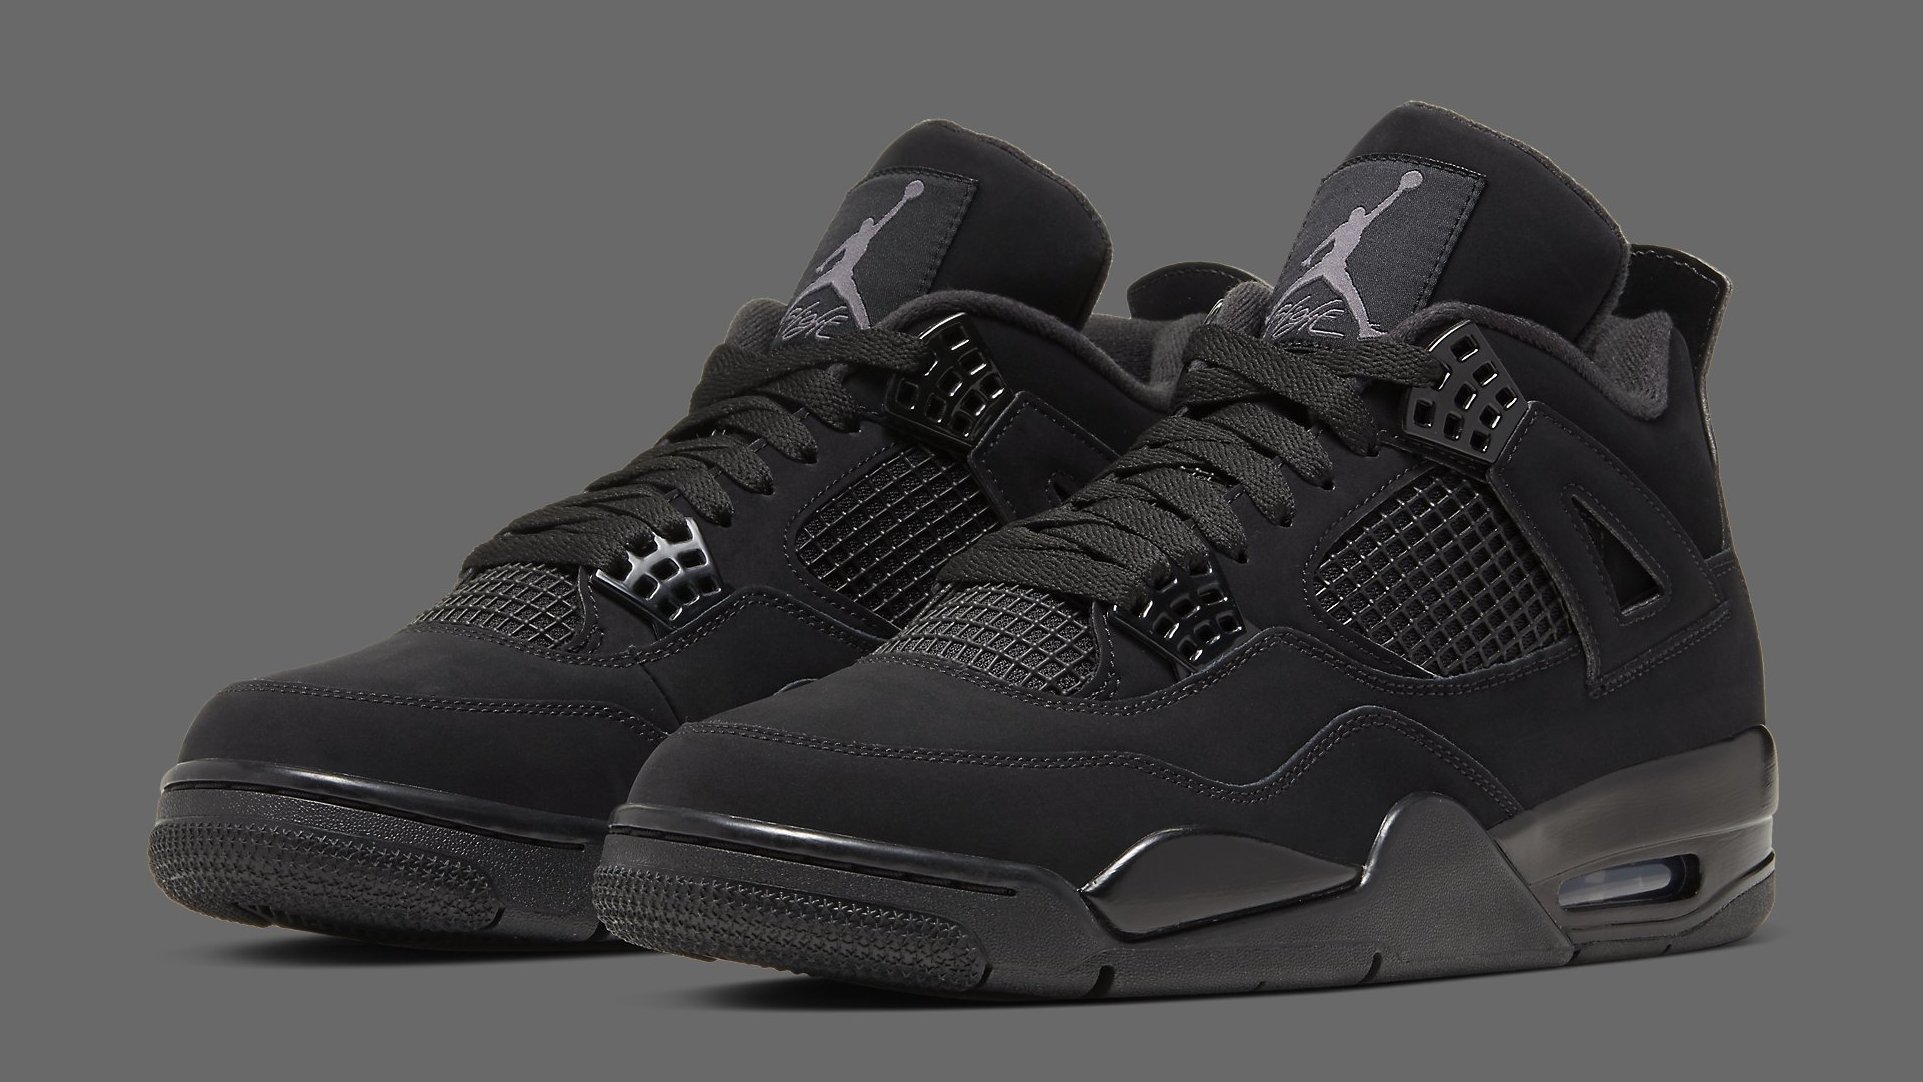 Posdata Playa Hablar con  Air Jordan 4 Retro 'Black Cat' Release Date CU1110-010 | Sole Collector